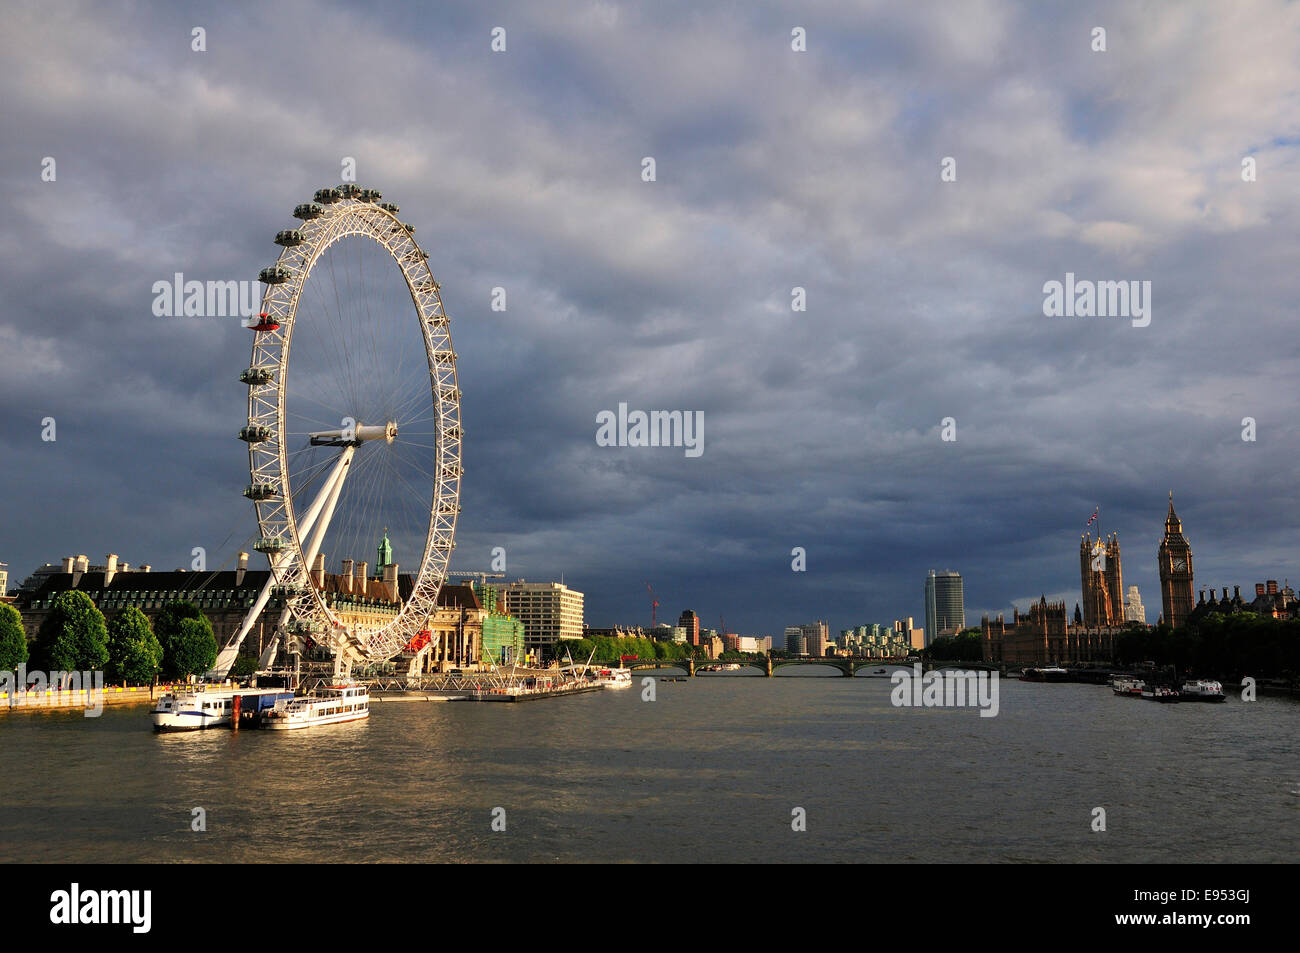 View from the Hungerford Bridge over the River Thames and the London Eye, London, England, United Kingdom - Stock Image